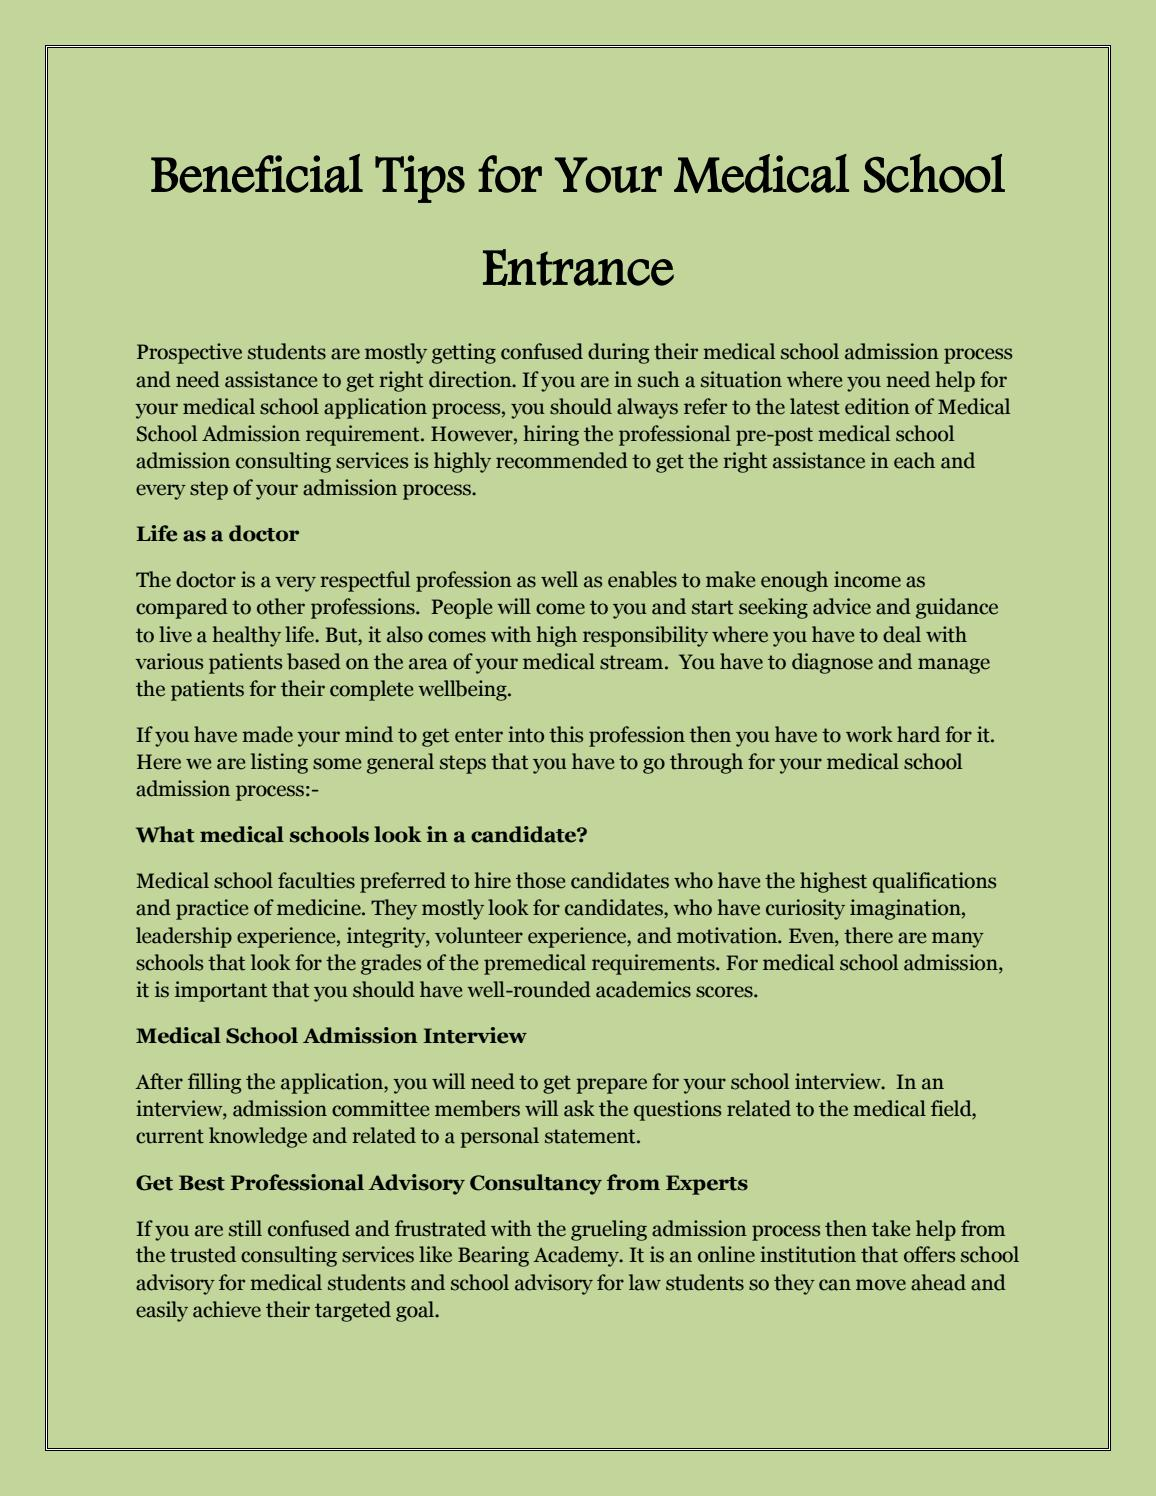 Beneficial Tips for Your Medical School Entrance by bearing